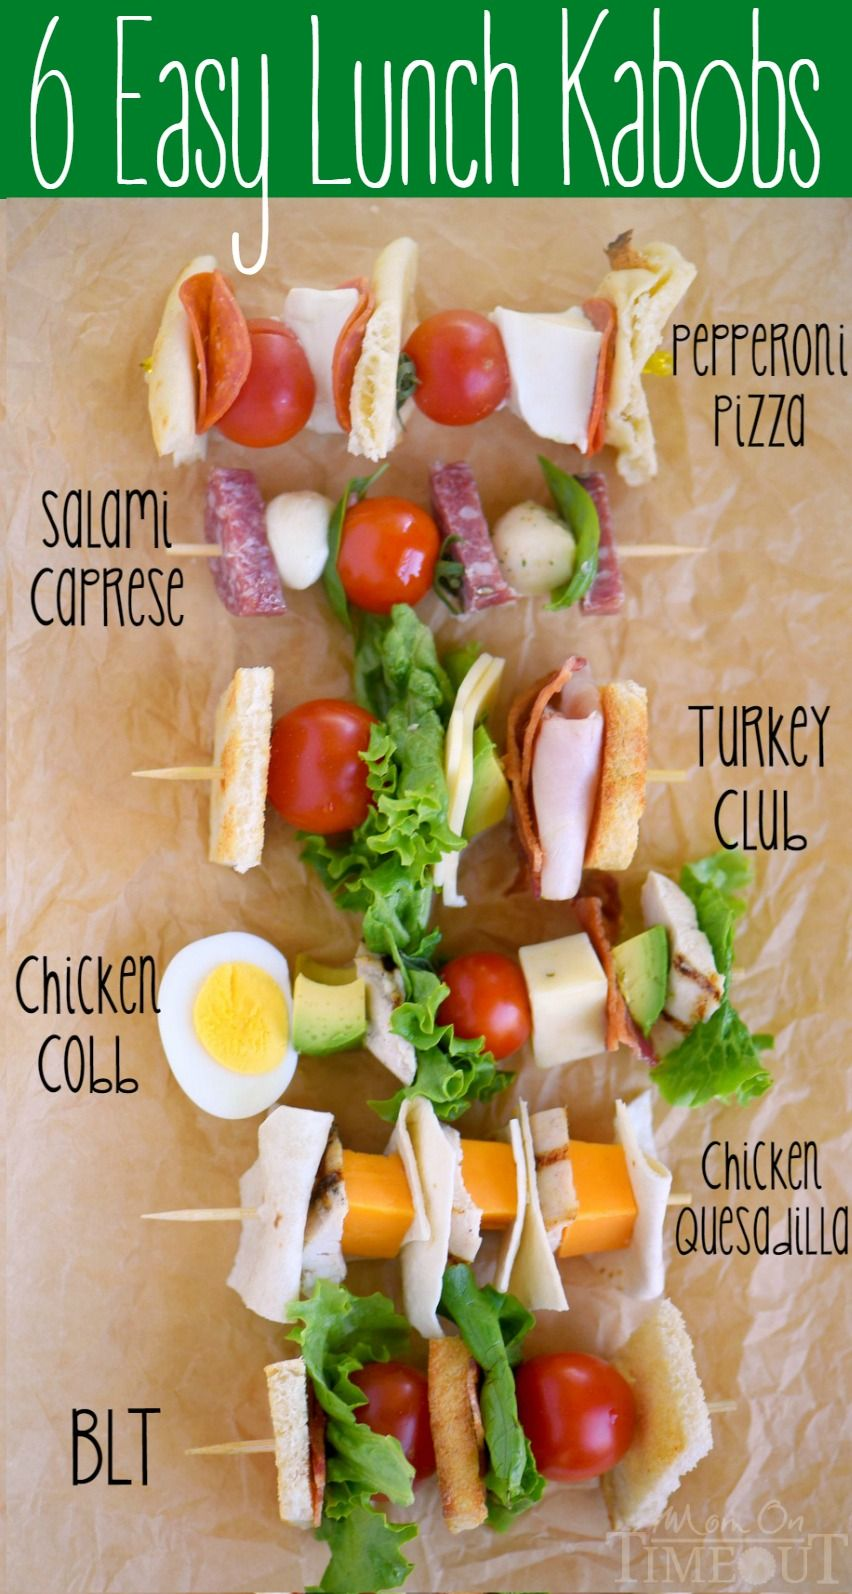 Six Easy Lunch Kabobs That Are Perfect For Back To School Keep